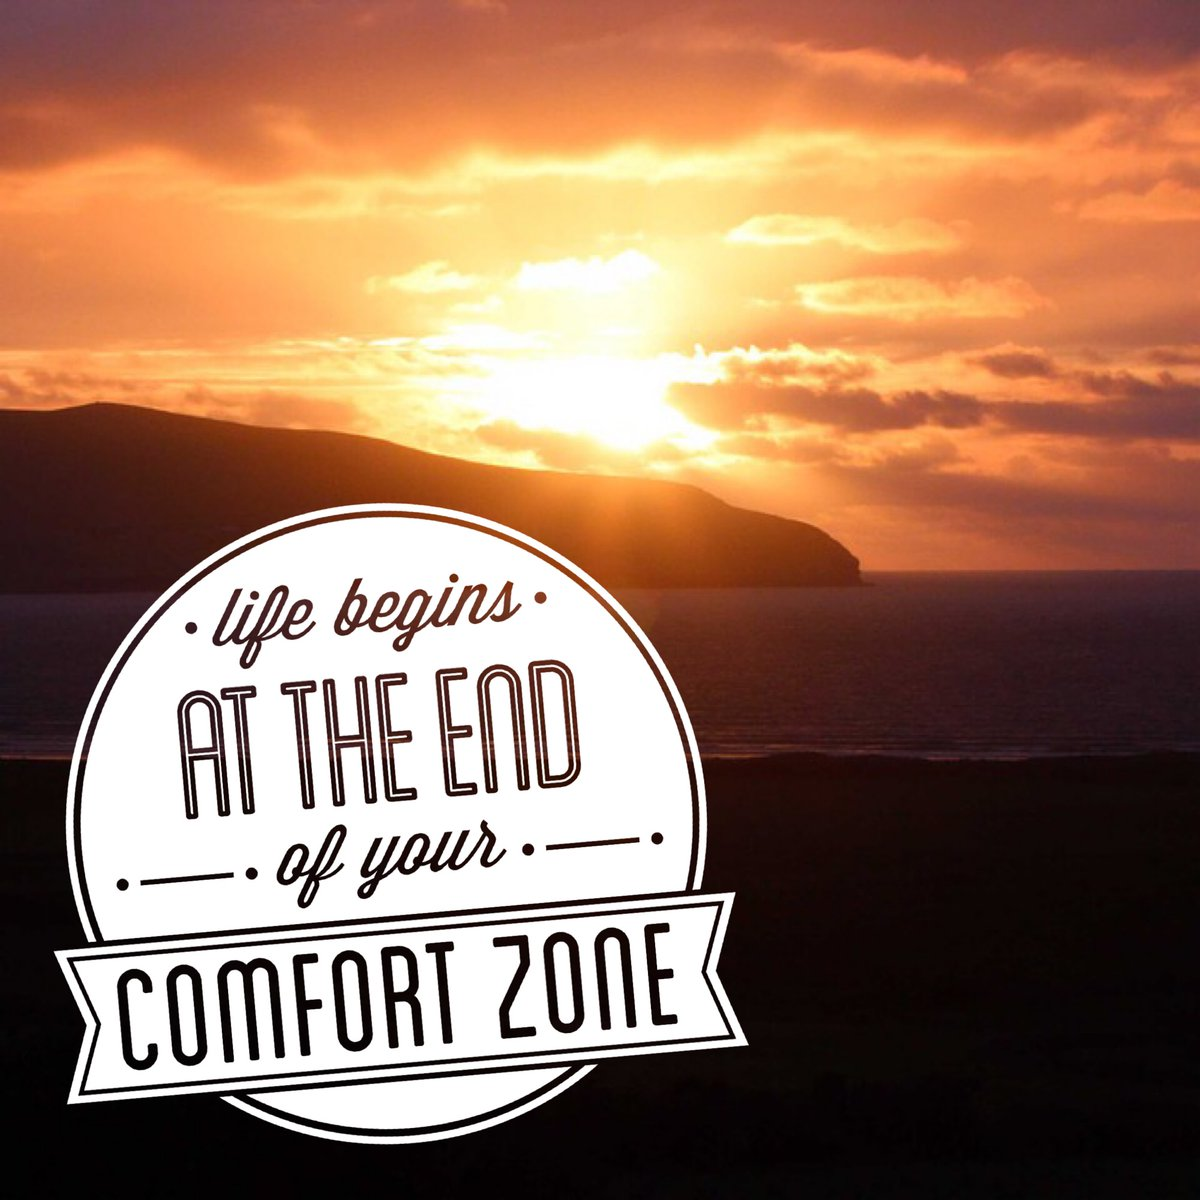 #LifeChangingTips #life #life #LifeLessons at the end of your #confort  zone. https://t.co/wyjJNvQaR1